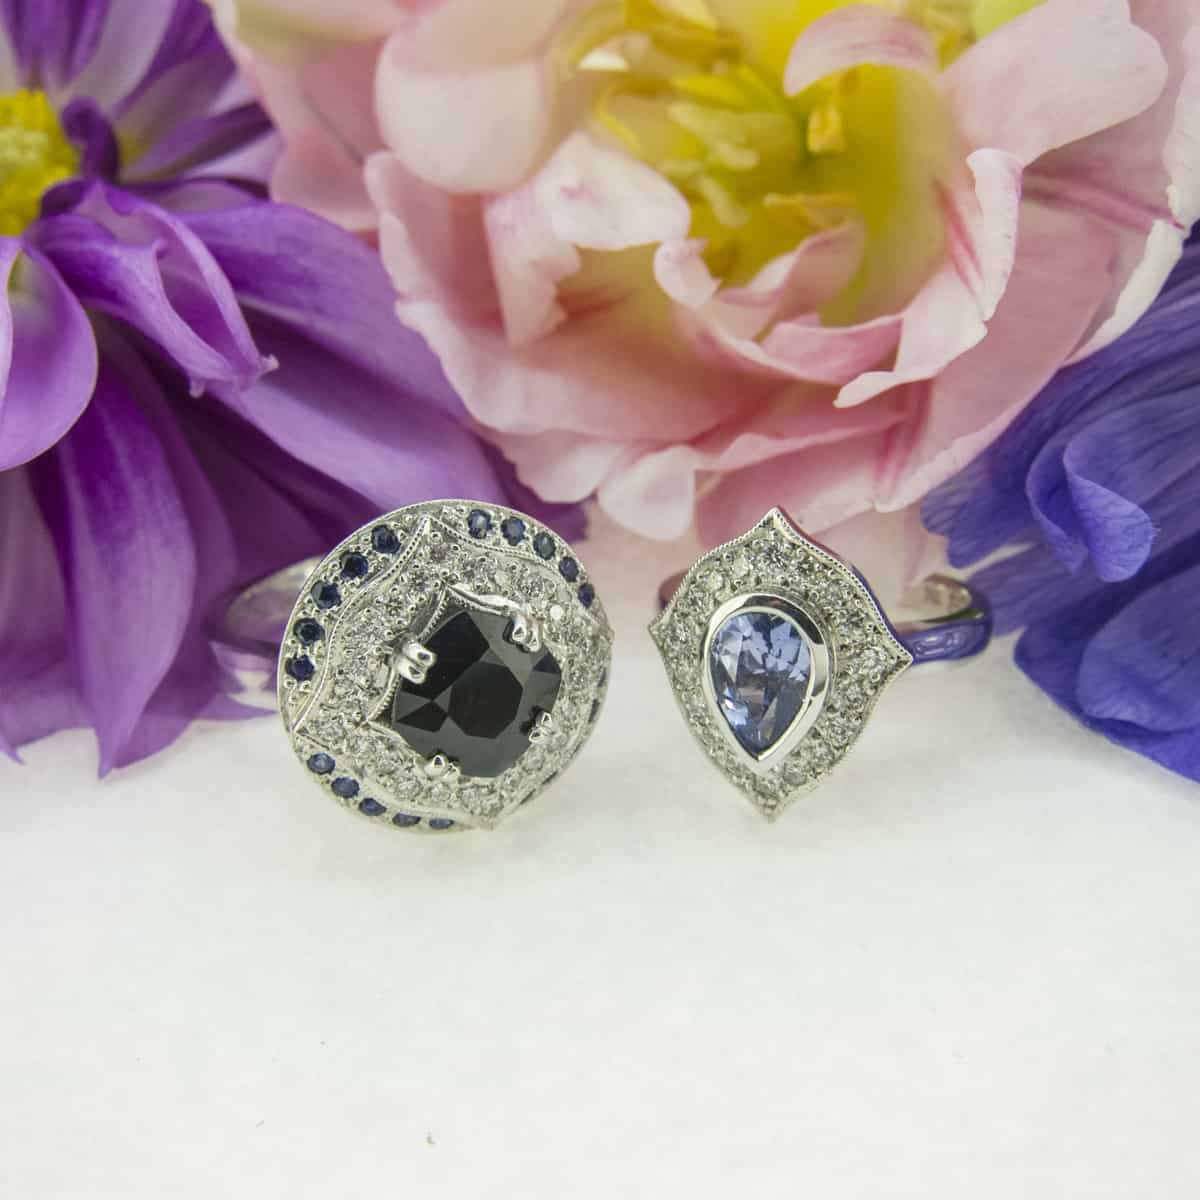 Hand made engagement rings, dress rings